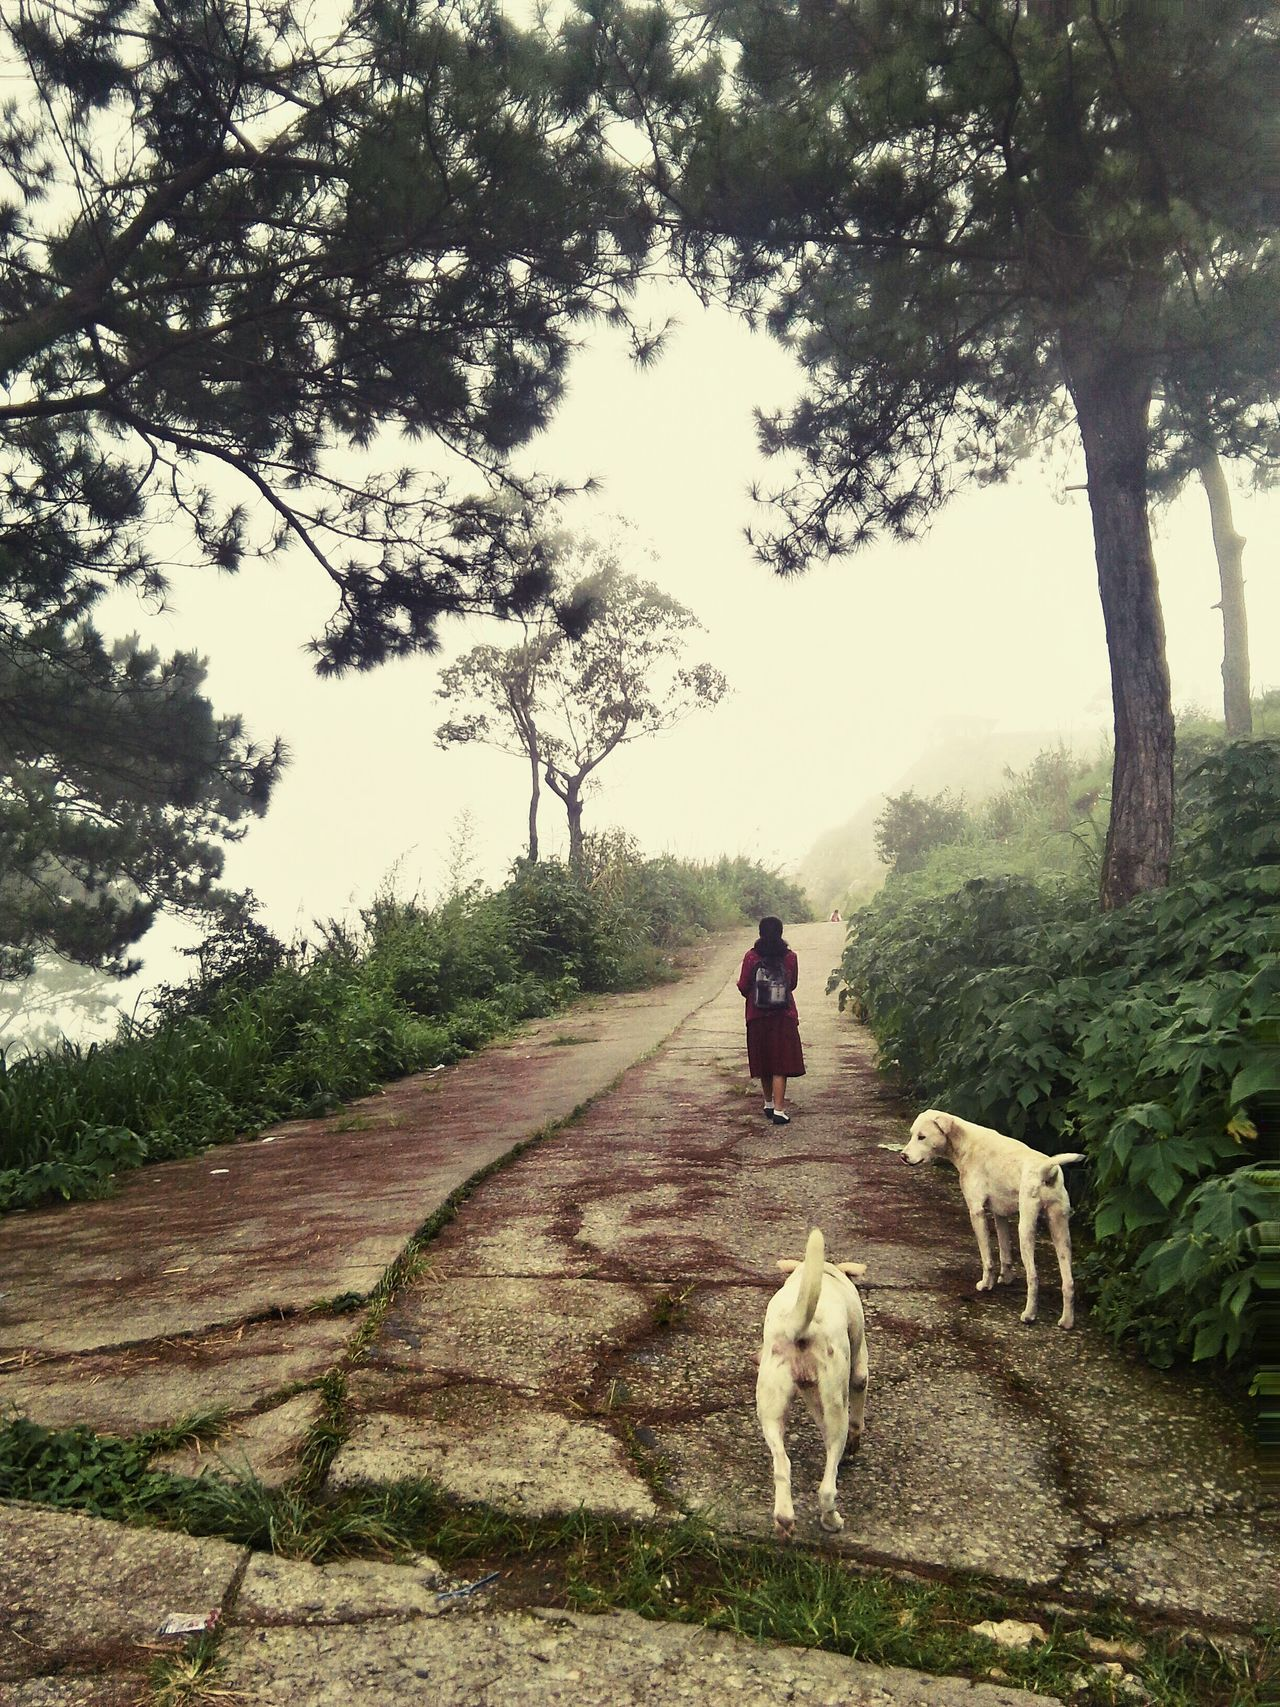 lone walk towards home after school. Alone Unknownroad Pathtohome Bravegirl Walk Foggyandcloudyafternoon Back SchoolGirl Mountainoushome Benguetbaguio Feel The Journey Asuscamera The OO Mission The Great Outdoors - 2016 EyeEm Awards The Street Photographer - 2016 EyeEm Awards The Oo Challenge Dogascompanion Mansbestfriend Showcase July! Showcase July 2016 Showcase July People And Places. People And Places People And Places Miles Away Live For The Story Live For The Story BYOPaper! The Street Photographer - 2017 EyeEm Awards The Great Outdoors - 2017 EyeEm Awards The Portraitist - 2017 EyeEm Awards The Week On EyeEm Be. Ready.